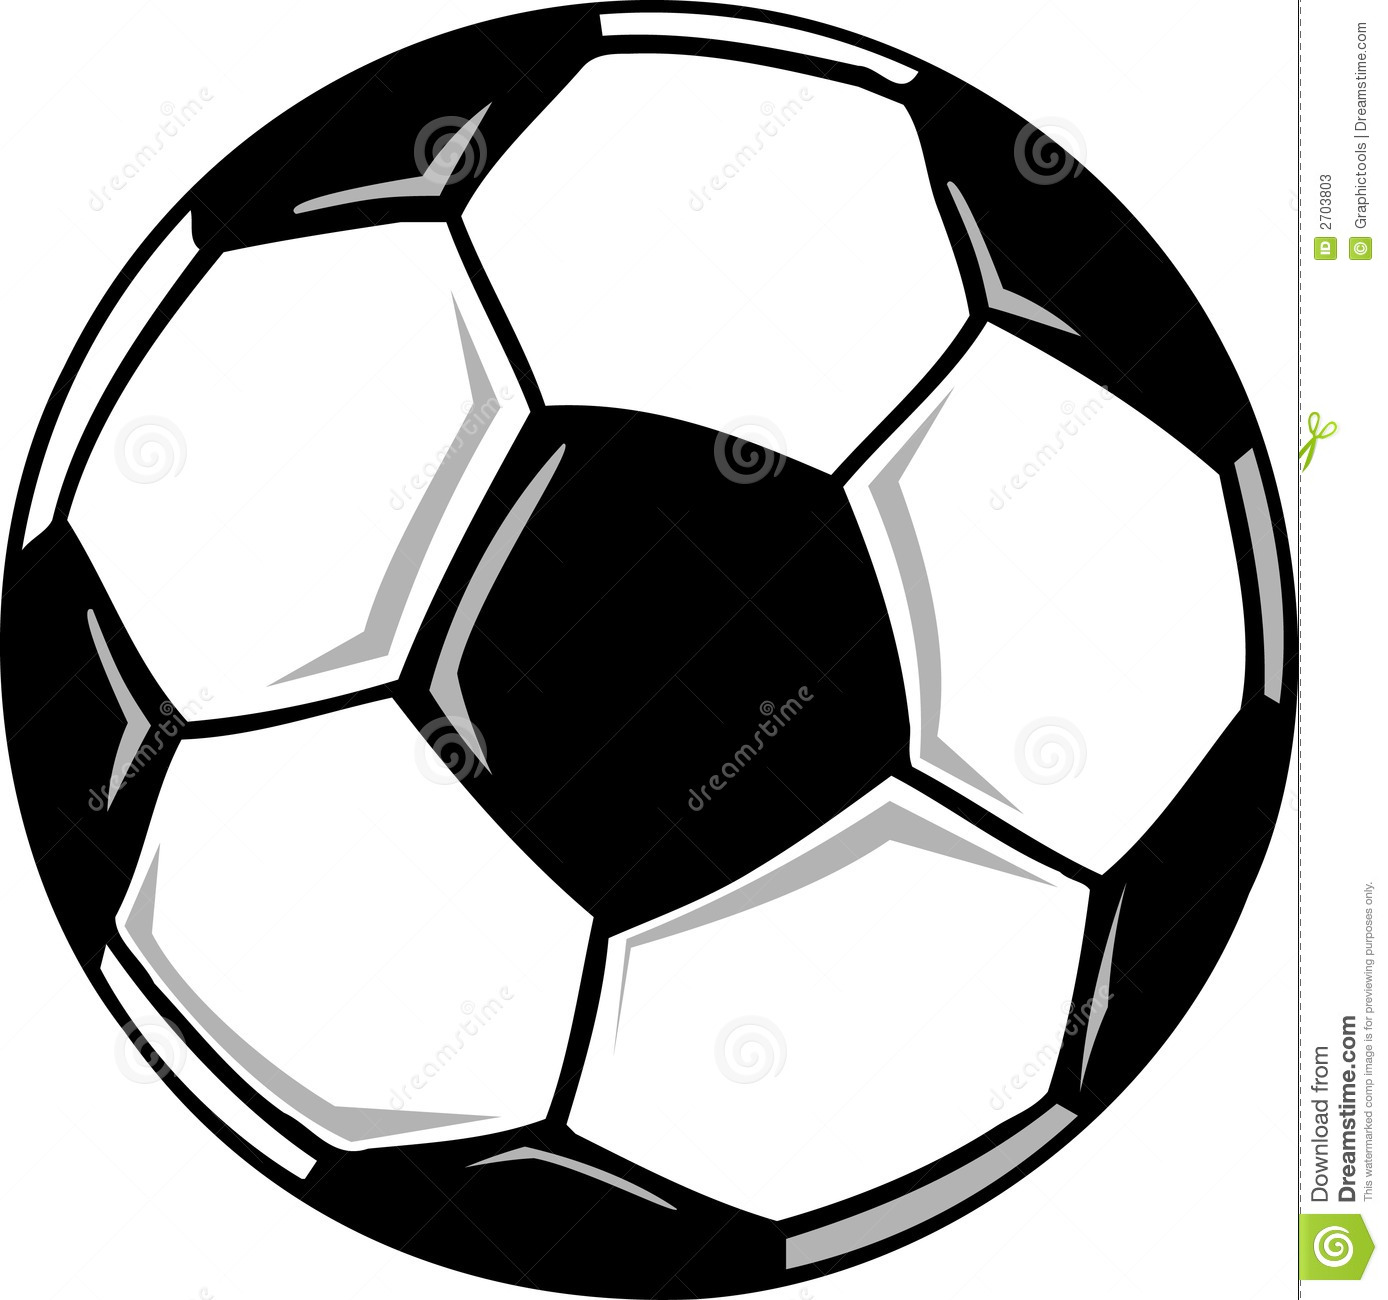 1388x1300 Soccer Goal Black And White Clipart